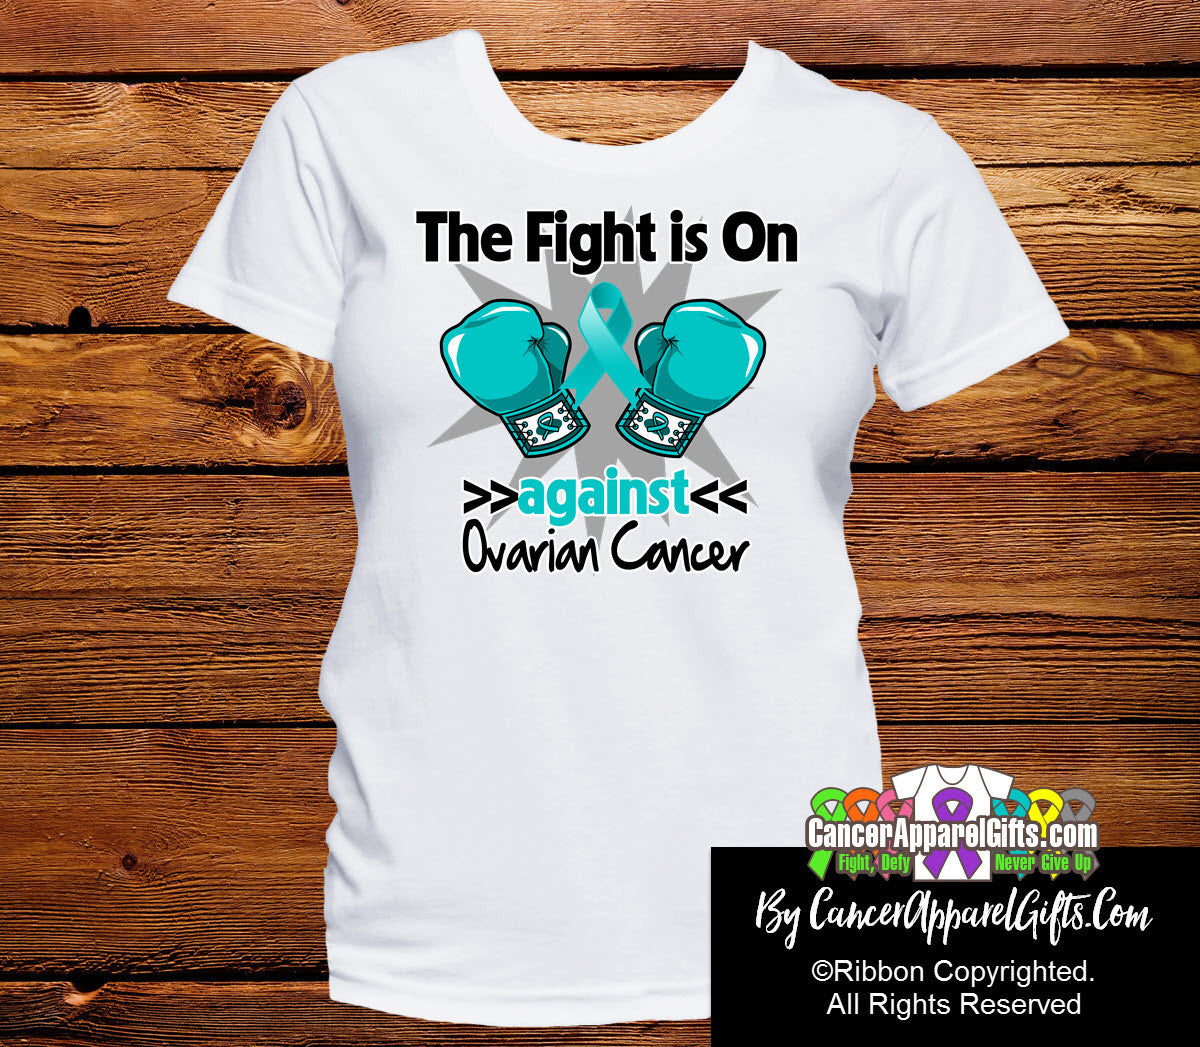 Ovarian Cancer The Fight is On Ladies Shirts